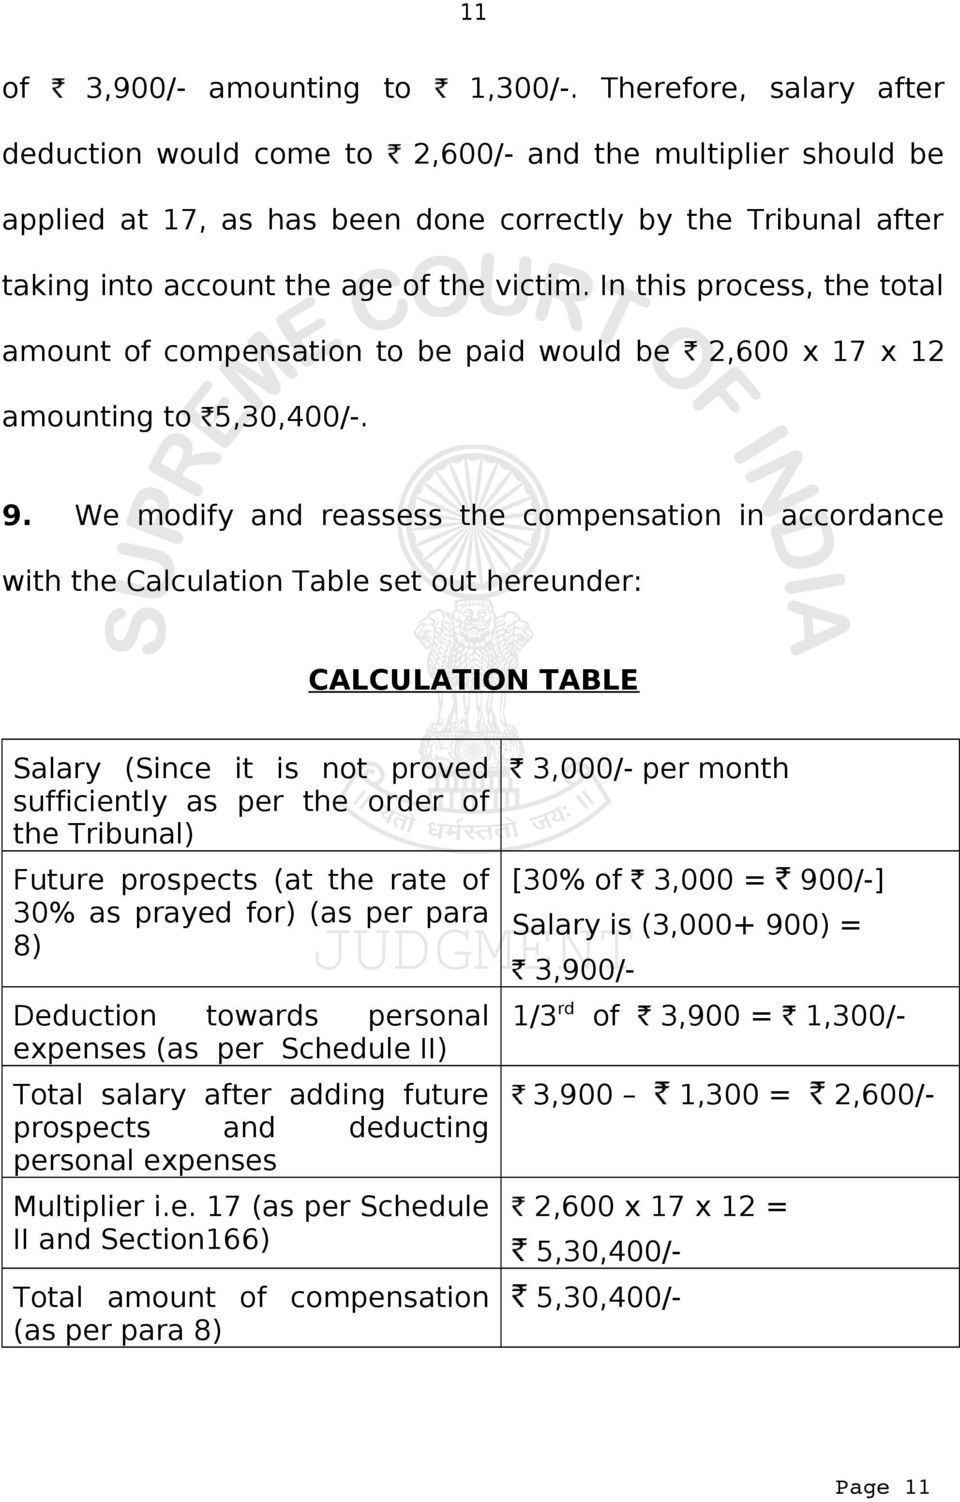 In this process, the total amount of compensation to be paid would be 2,600 x 17 x 12 amounting to 5,30,400/-. 9.